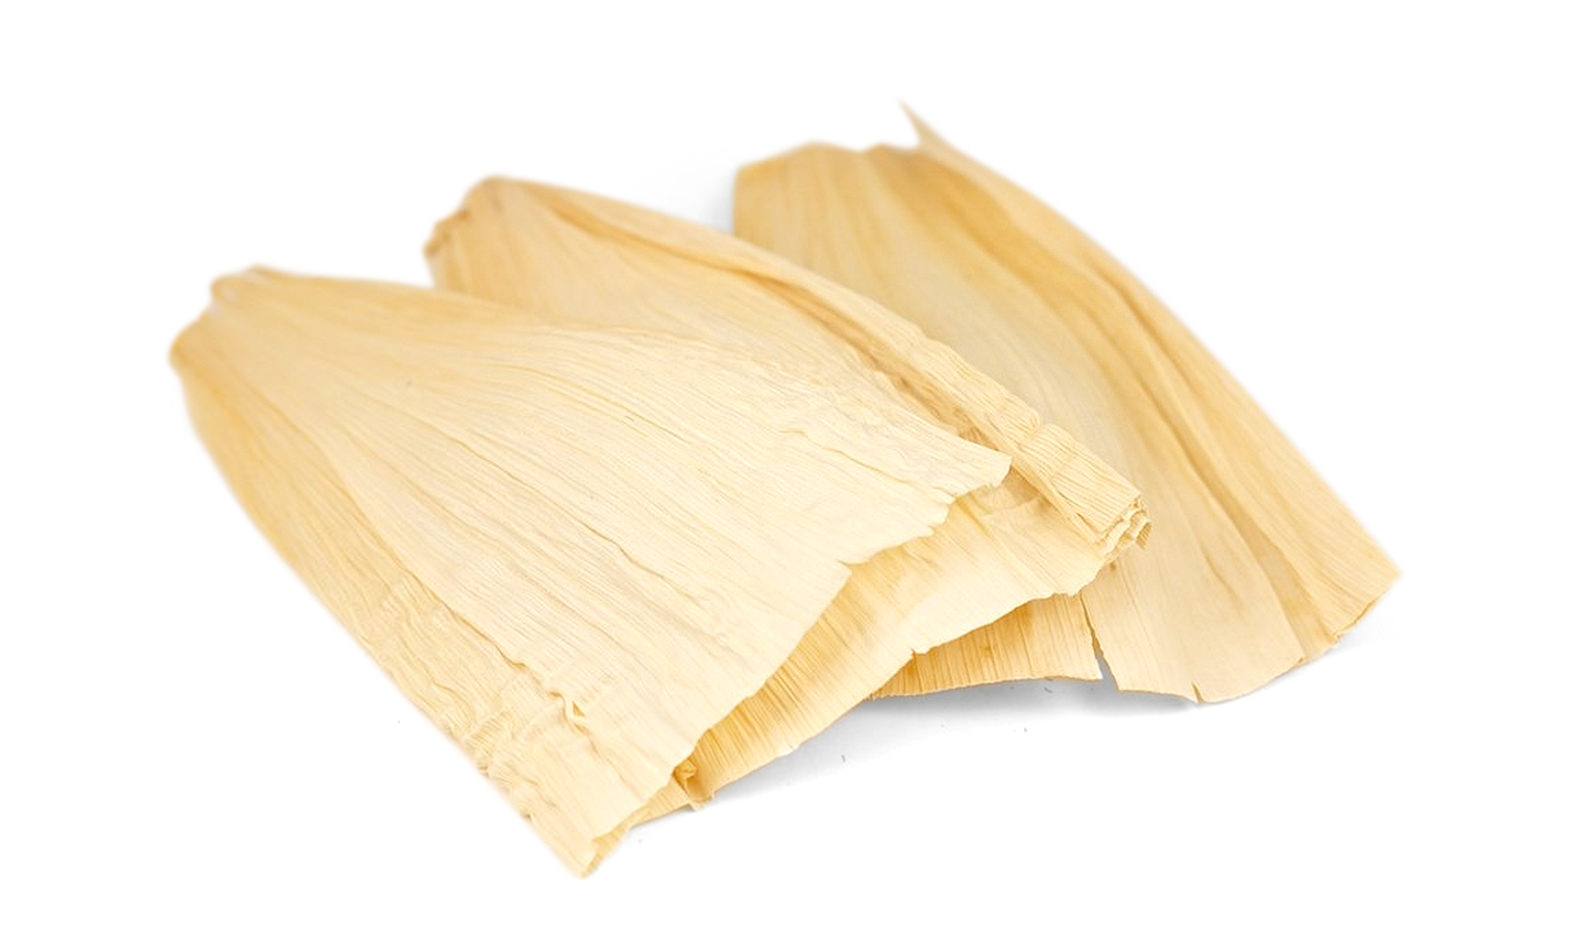 Corn Husks Image